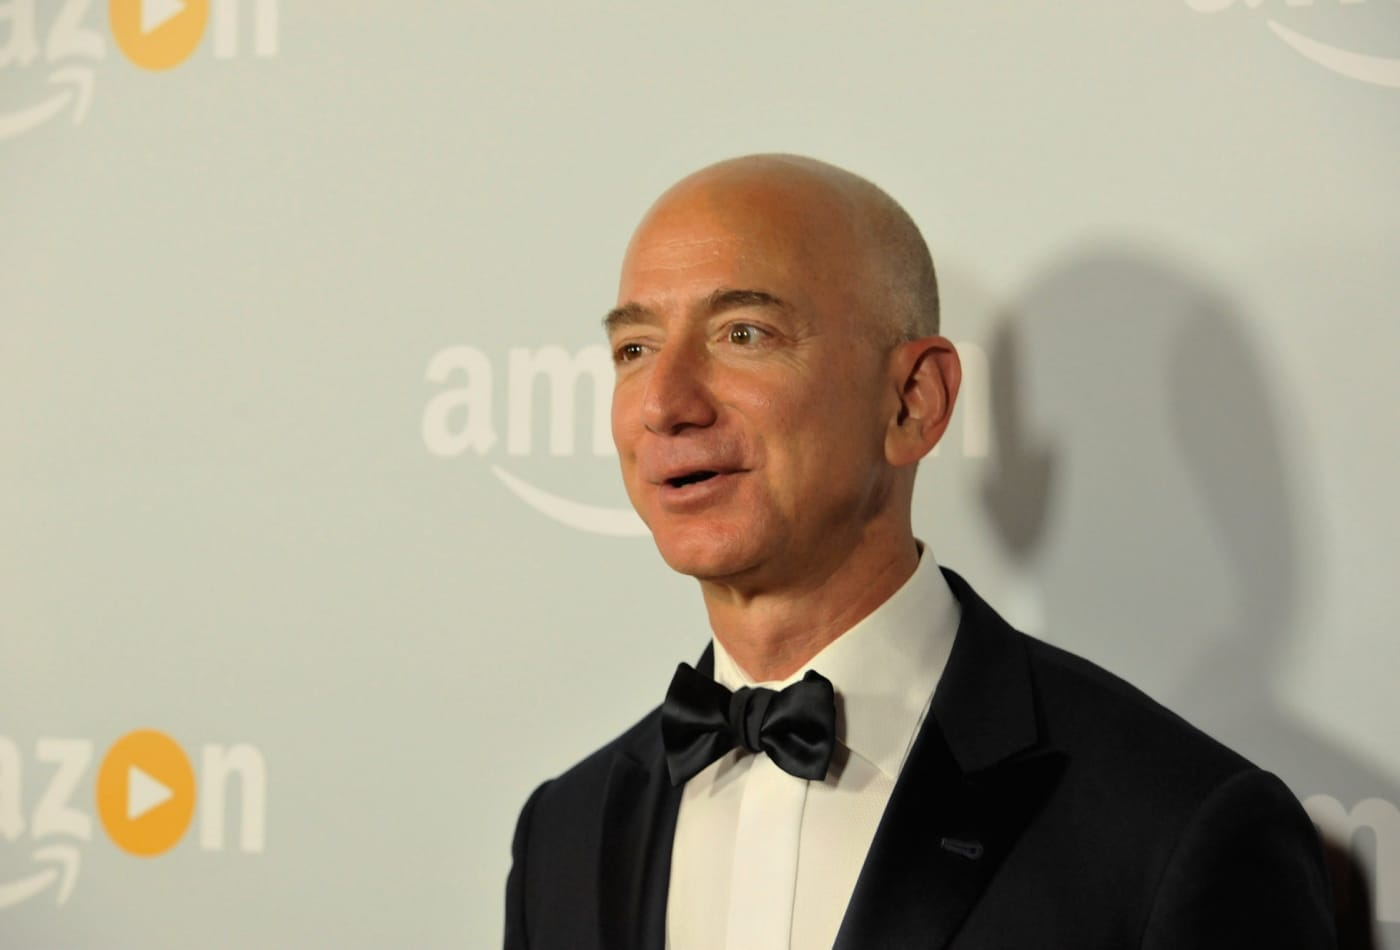 At age 30, Jeff Bezos thought this would be his one big regret in life